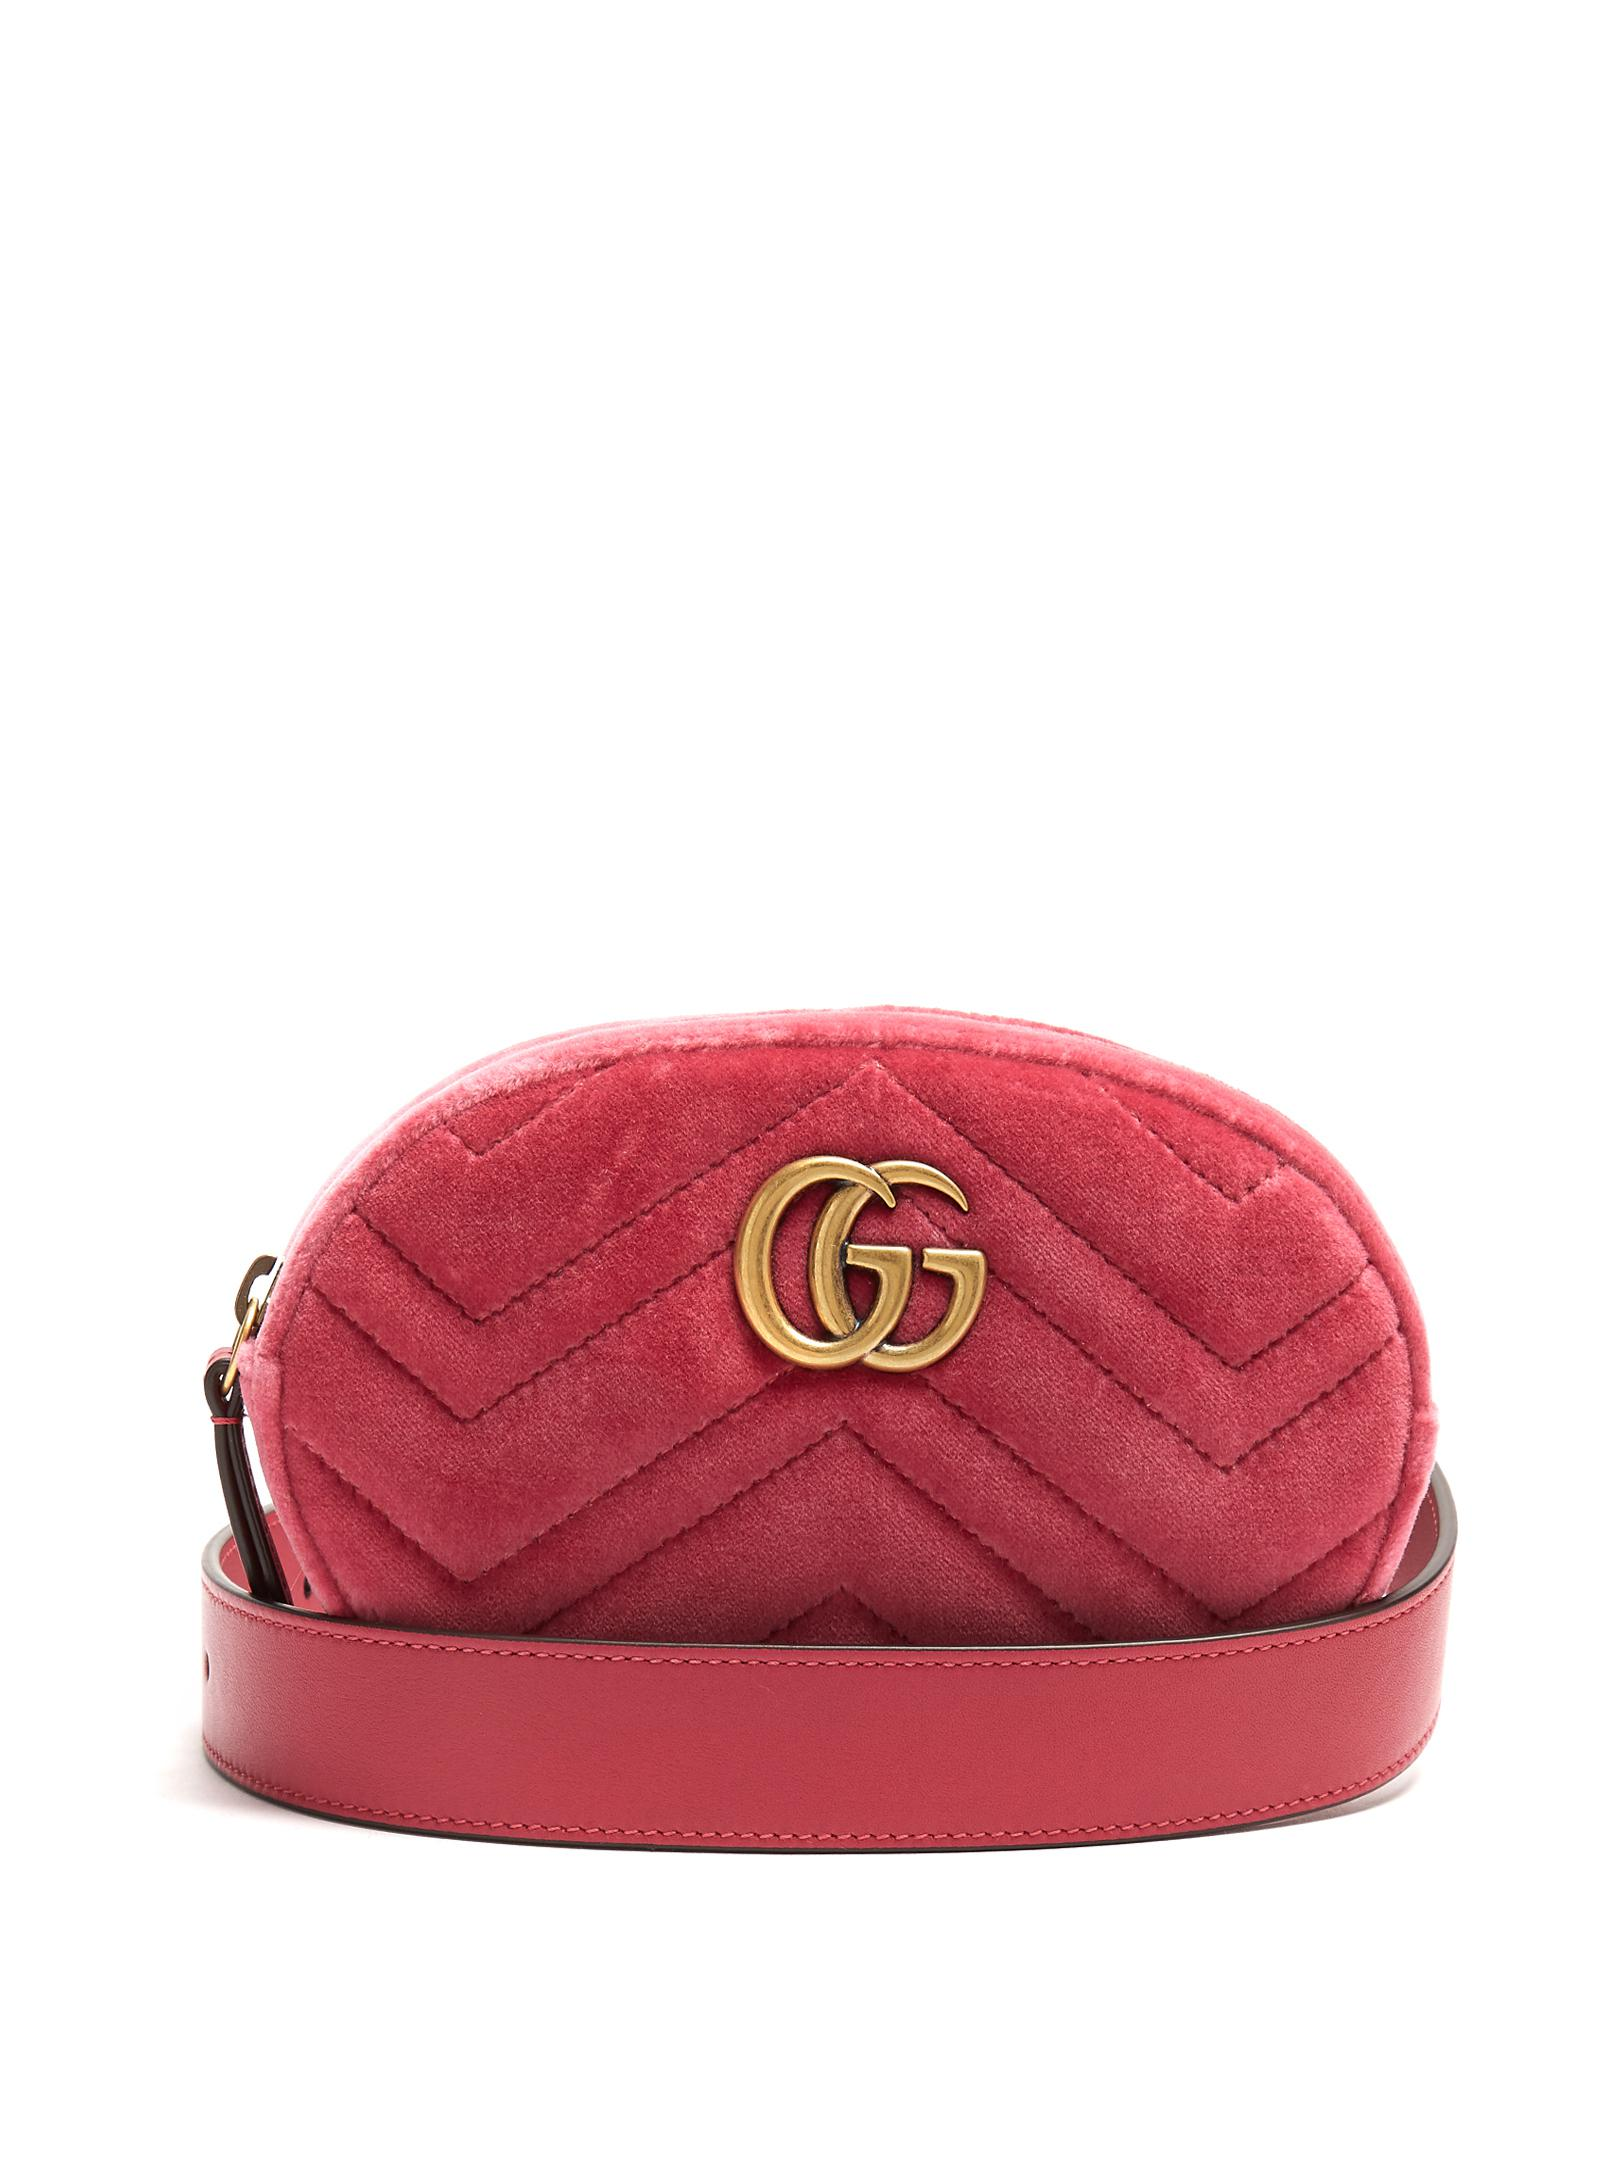 a9871c759e7 Lyst Gucci Gg Marmont Quilted Velvet Belt Bag In Pink